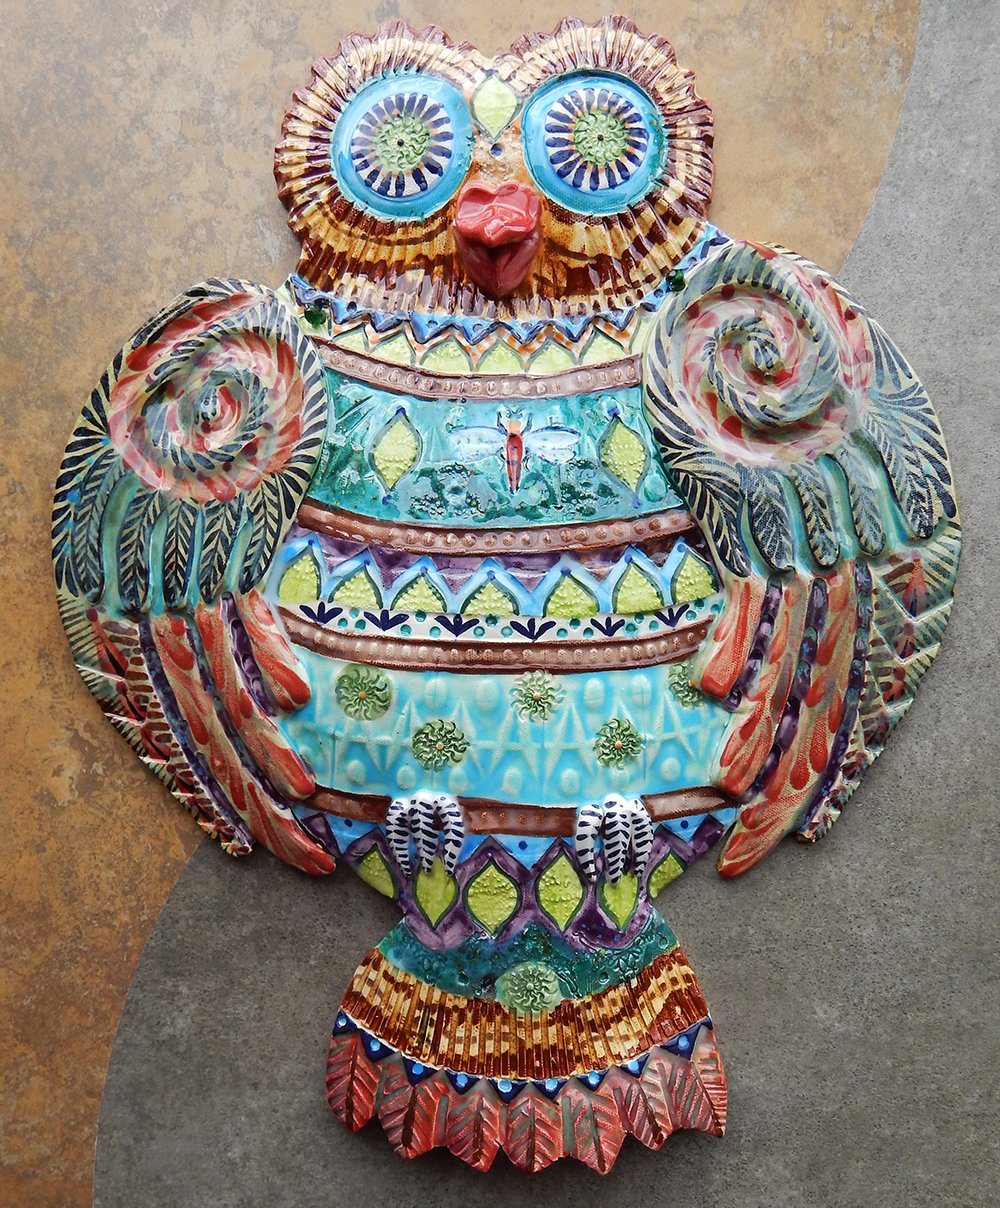 Functional carved birdhouse nest of birds and great horned owl